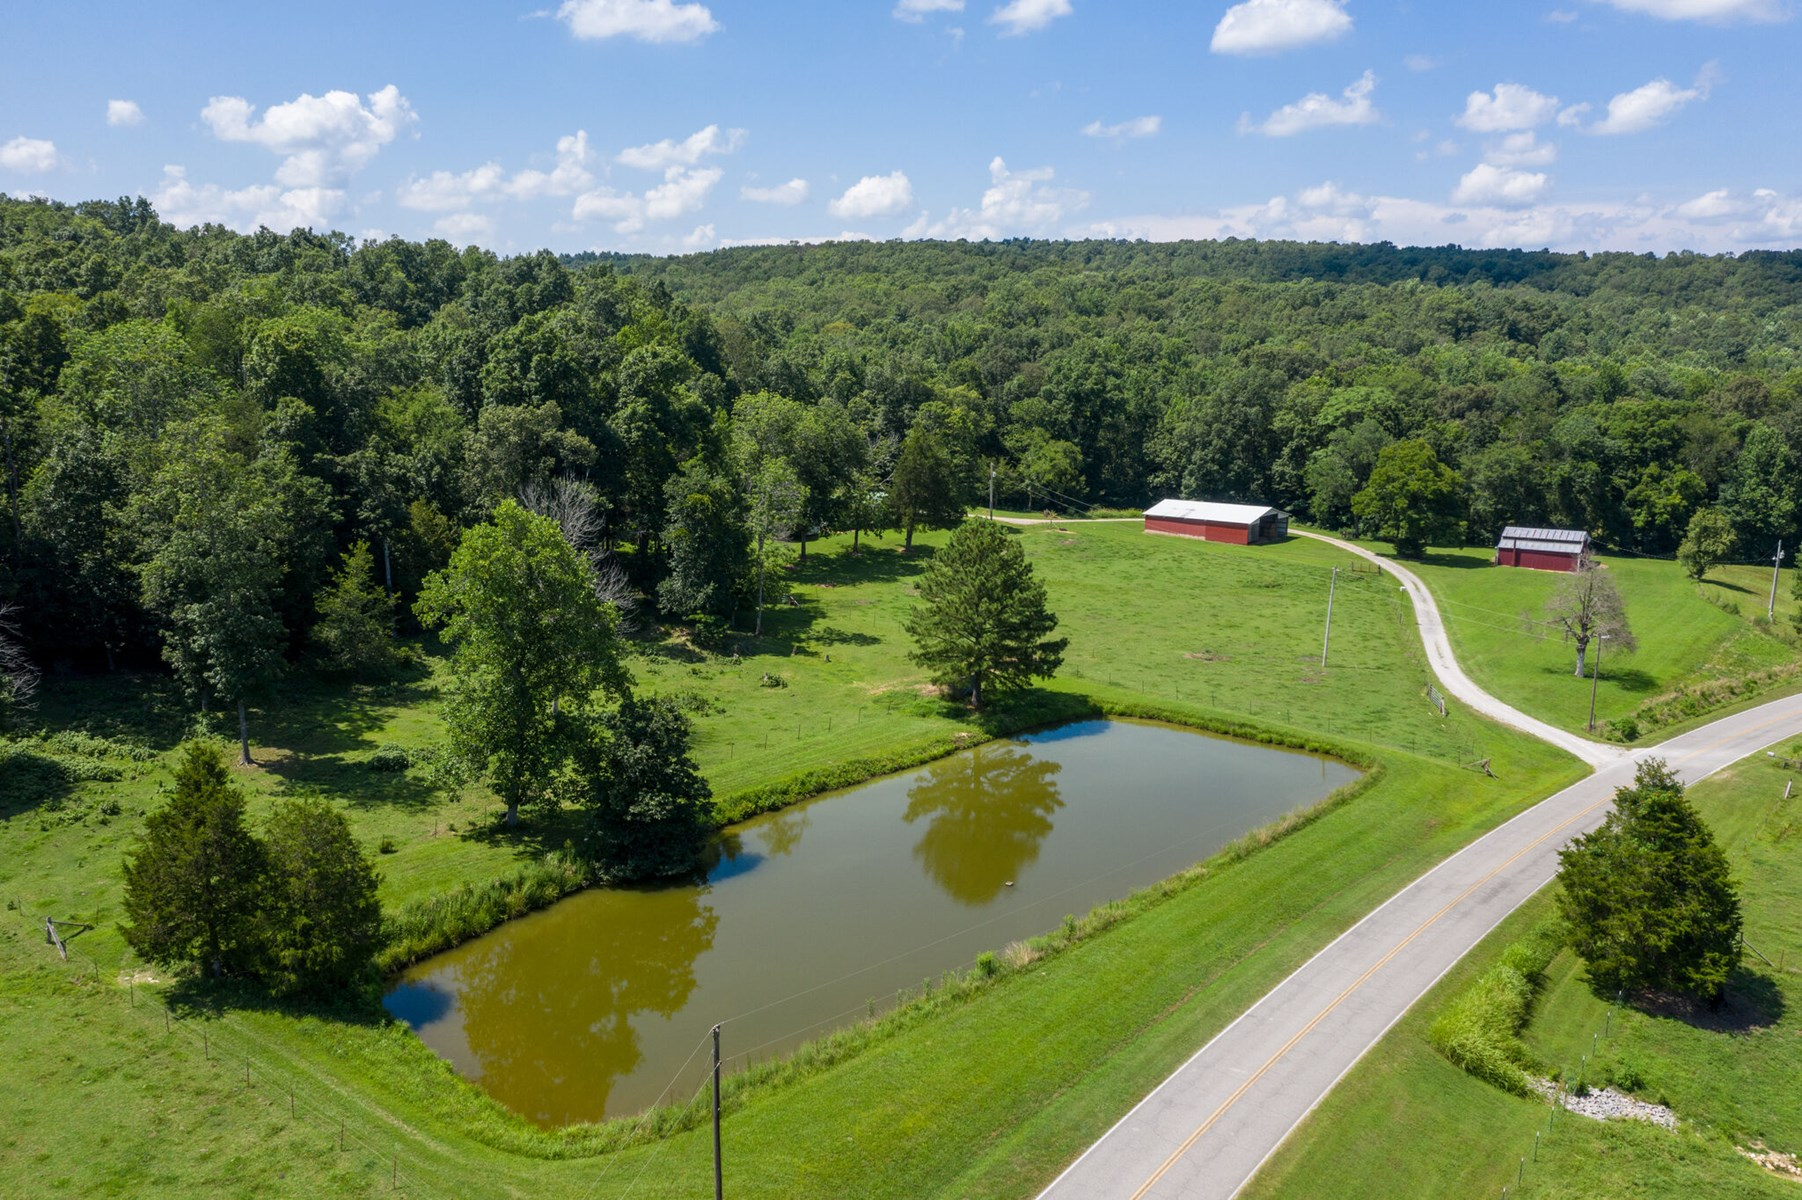 Tennessee Mini-Farm with Acreage & Hay Barn for Sale